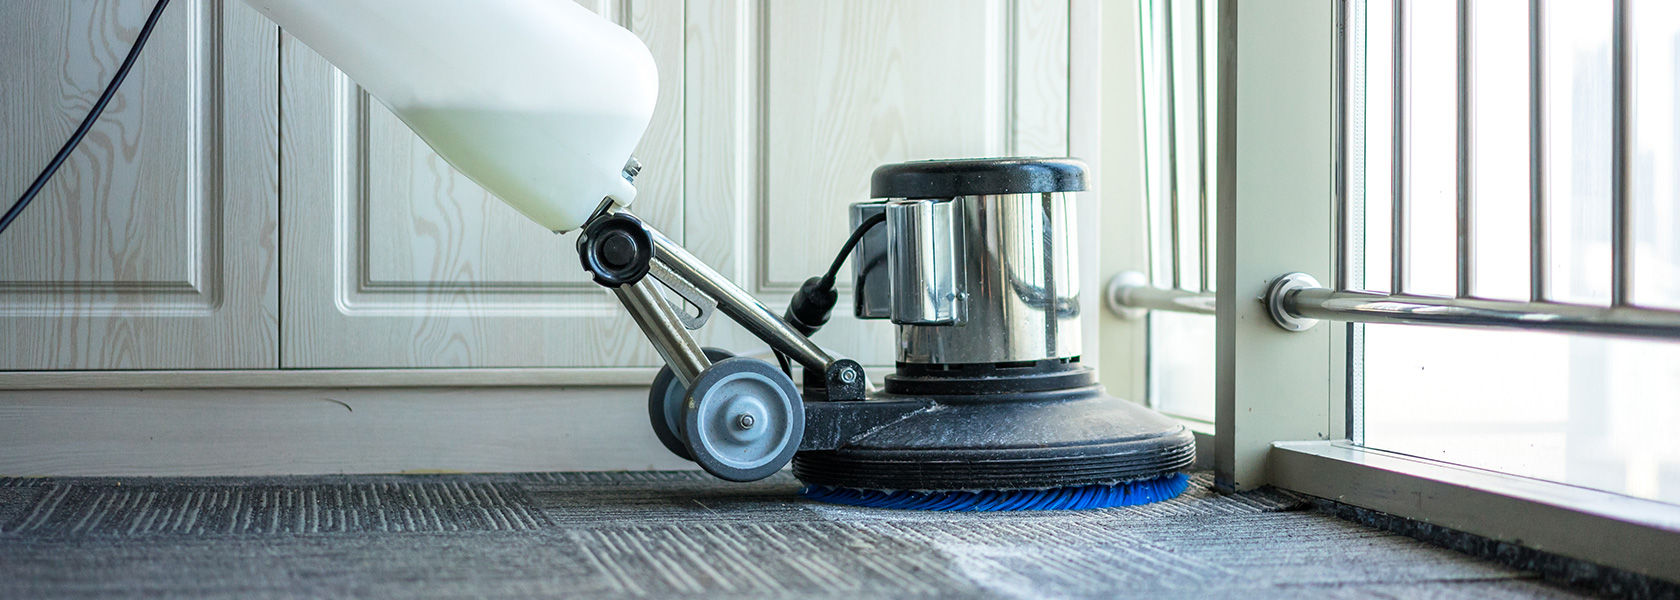 Carpet Cleaning Services Near Me in Abu Dhabi